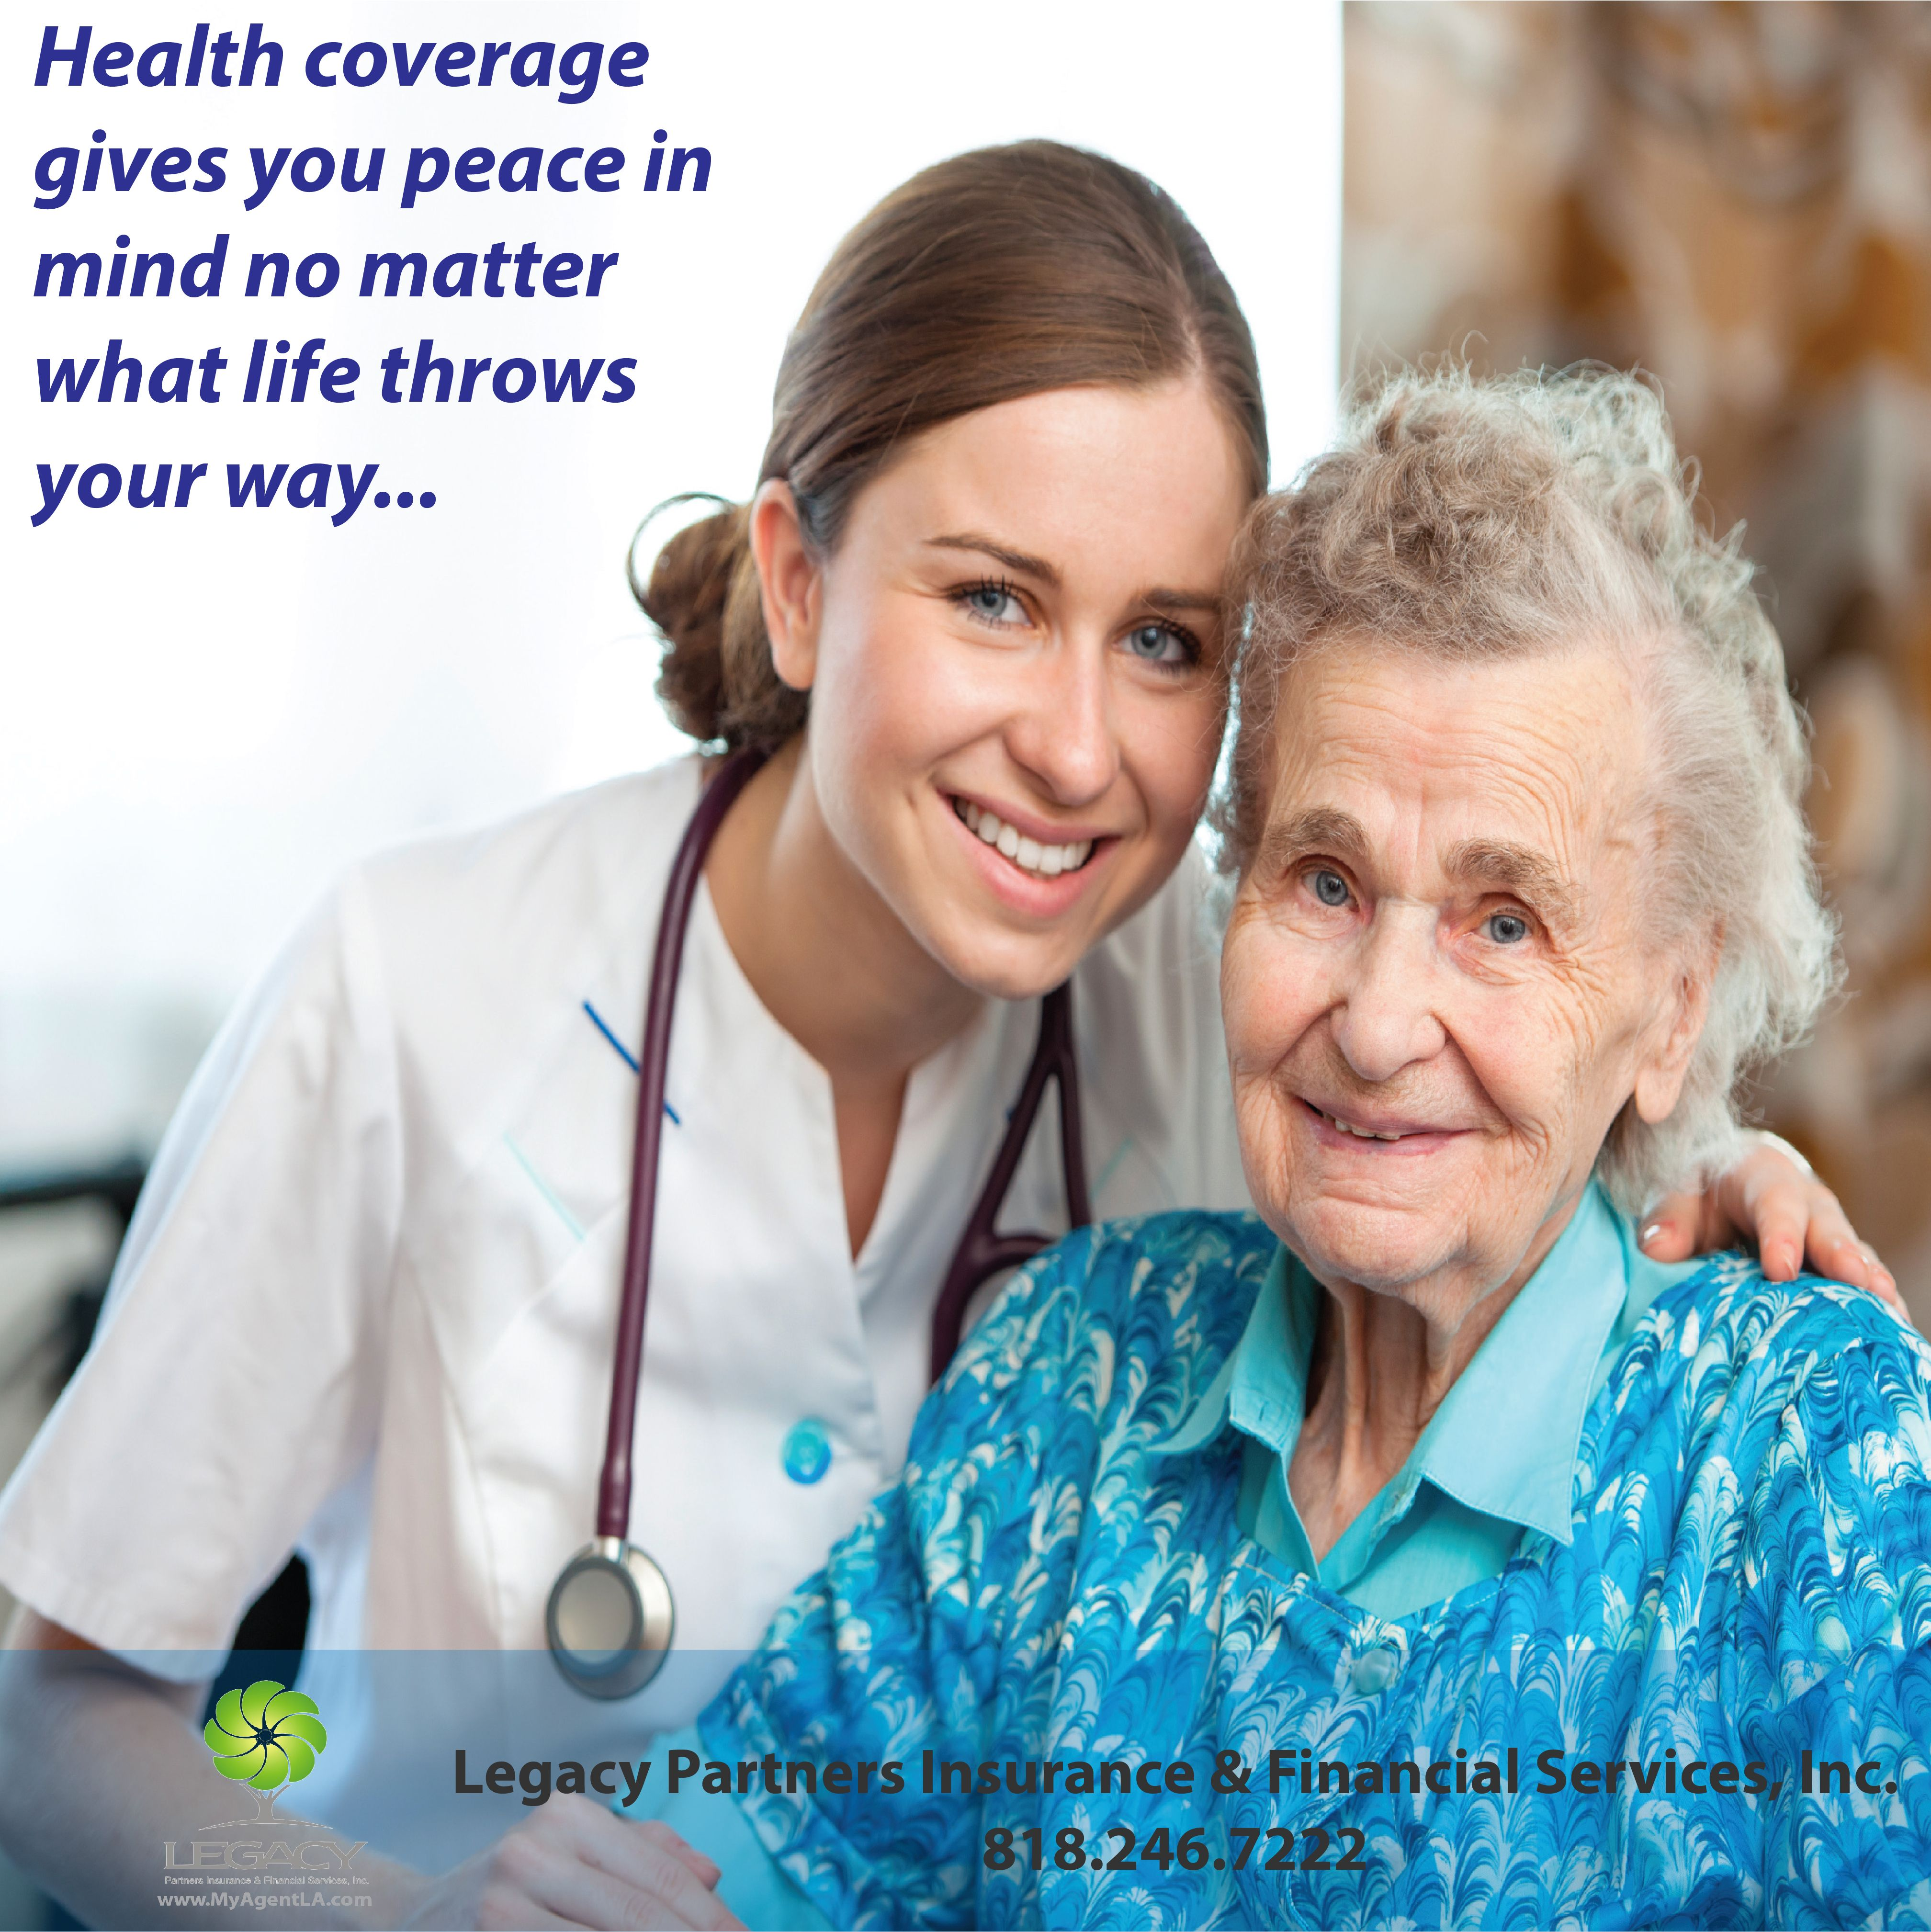 Health coverage gives you peace in mind Healthinsurance